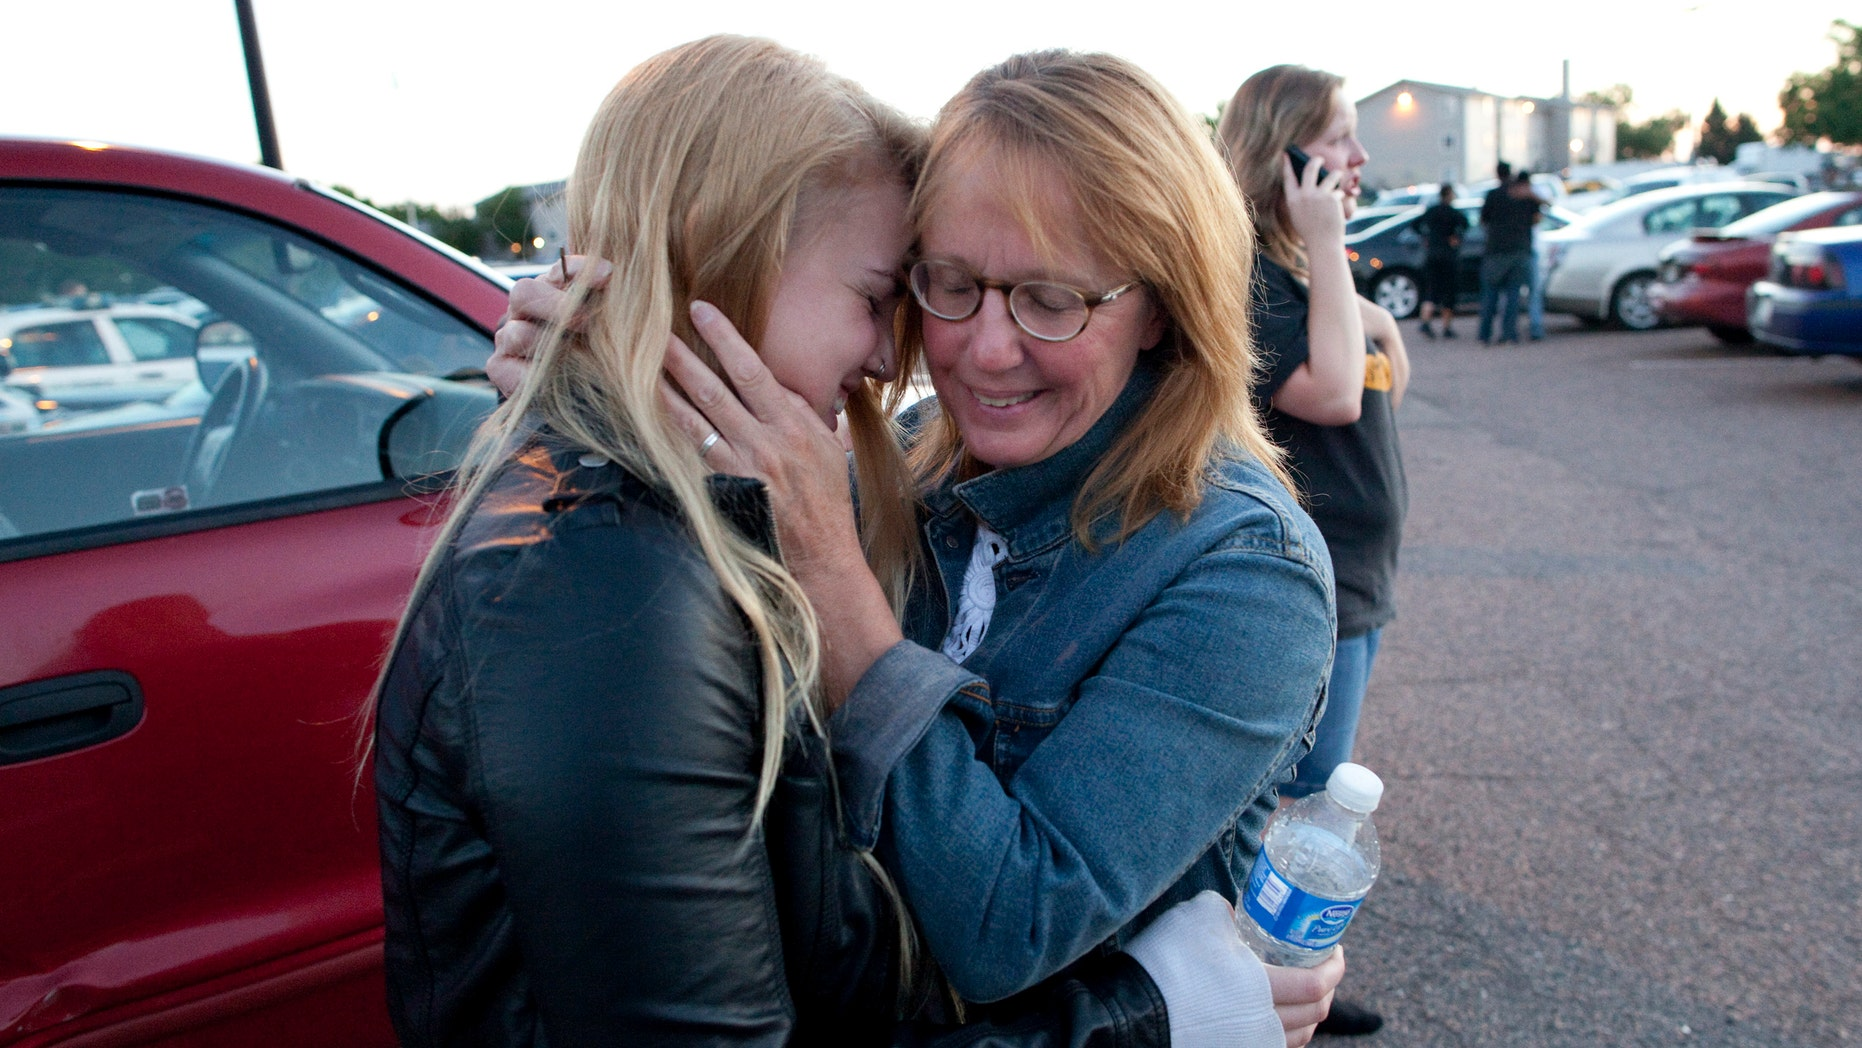 July 20, 2012: Emma Goos, 19, hugs her mother, Judy Goos, outside Gateway High School where witnesses were brought for questioning Friday, in Aurora, Colo. Emma was in the third row of the theater of the new Batman movie when the shooter entered. She helped apply pressure to a man's head who was injured.